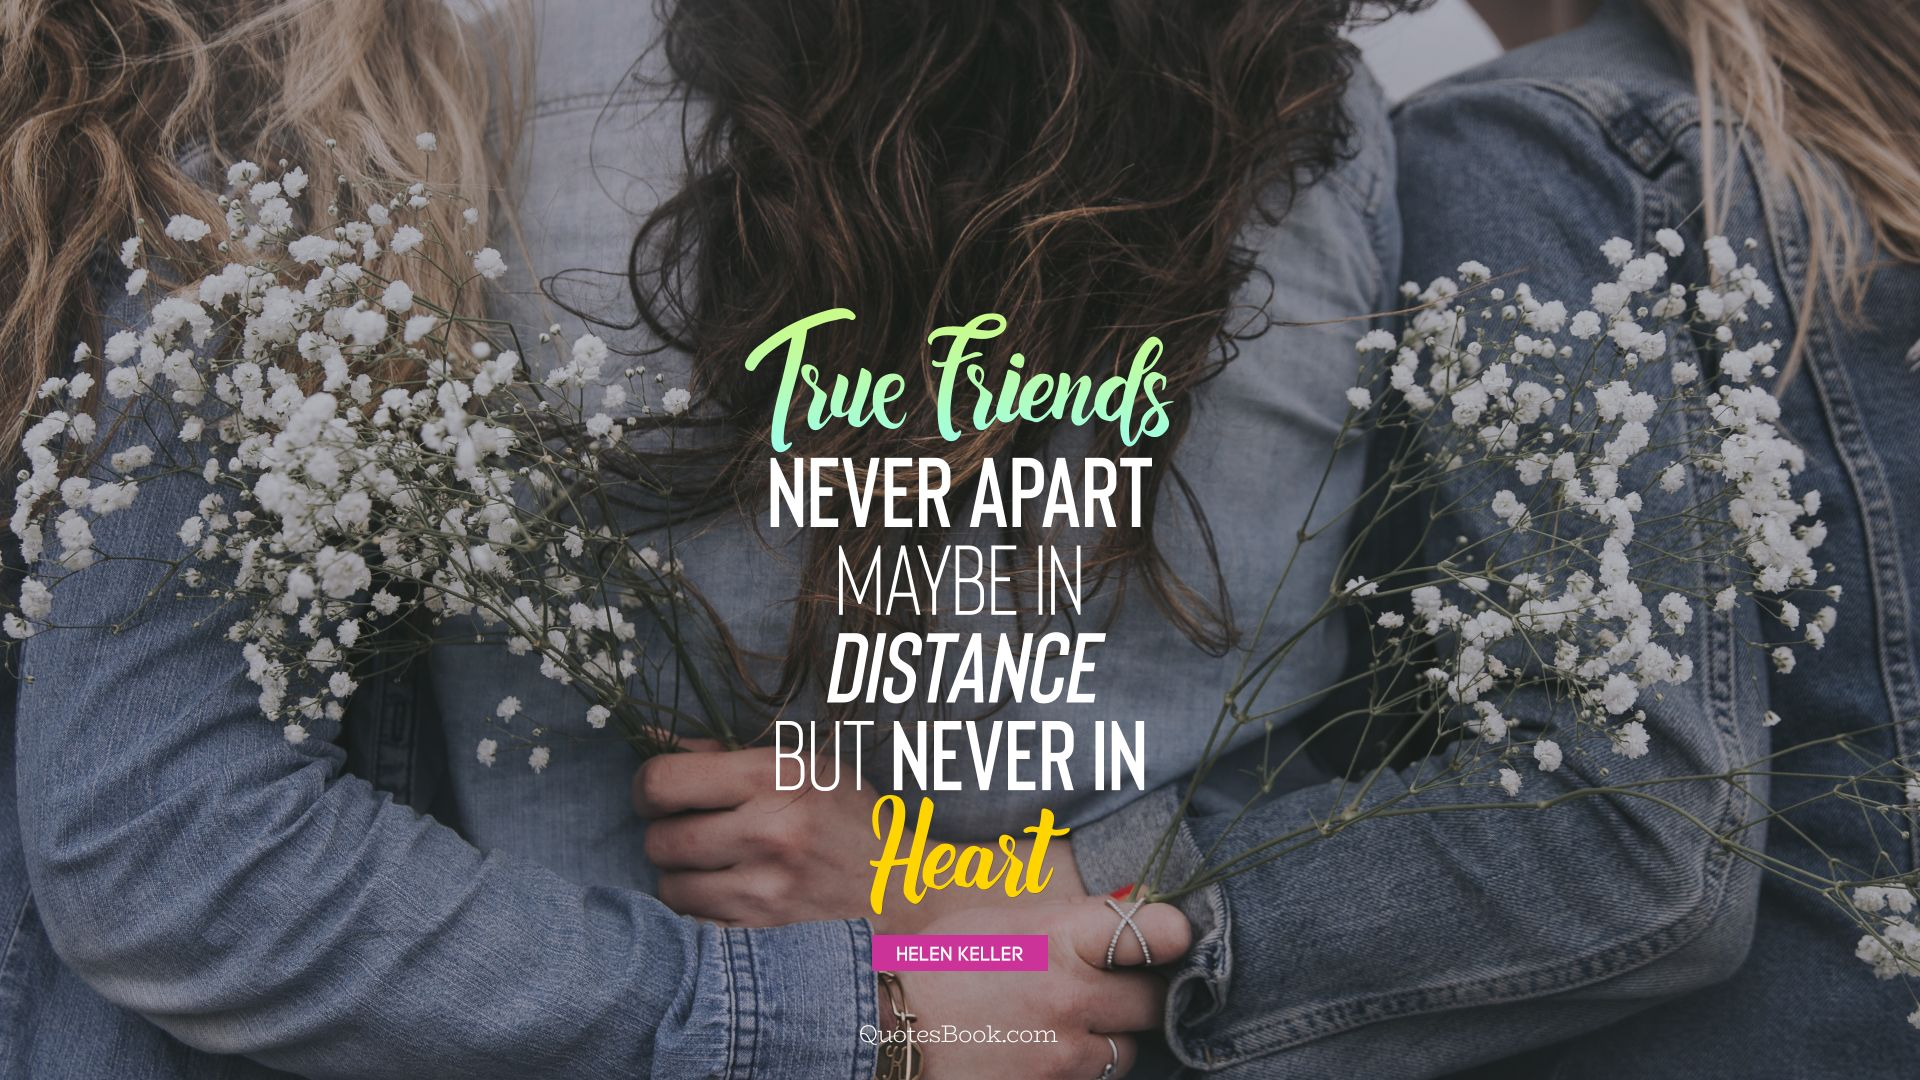 True friends never apart maybe in distance but never in heart. - Quote by Helen Keller